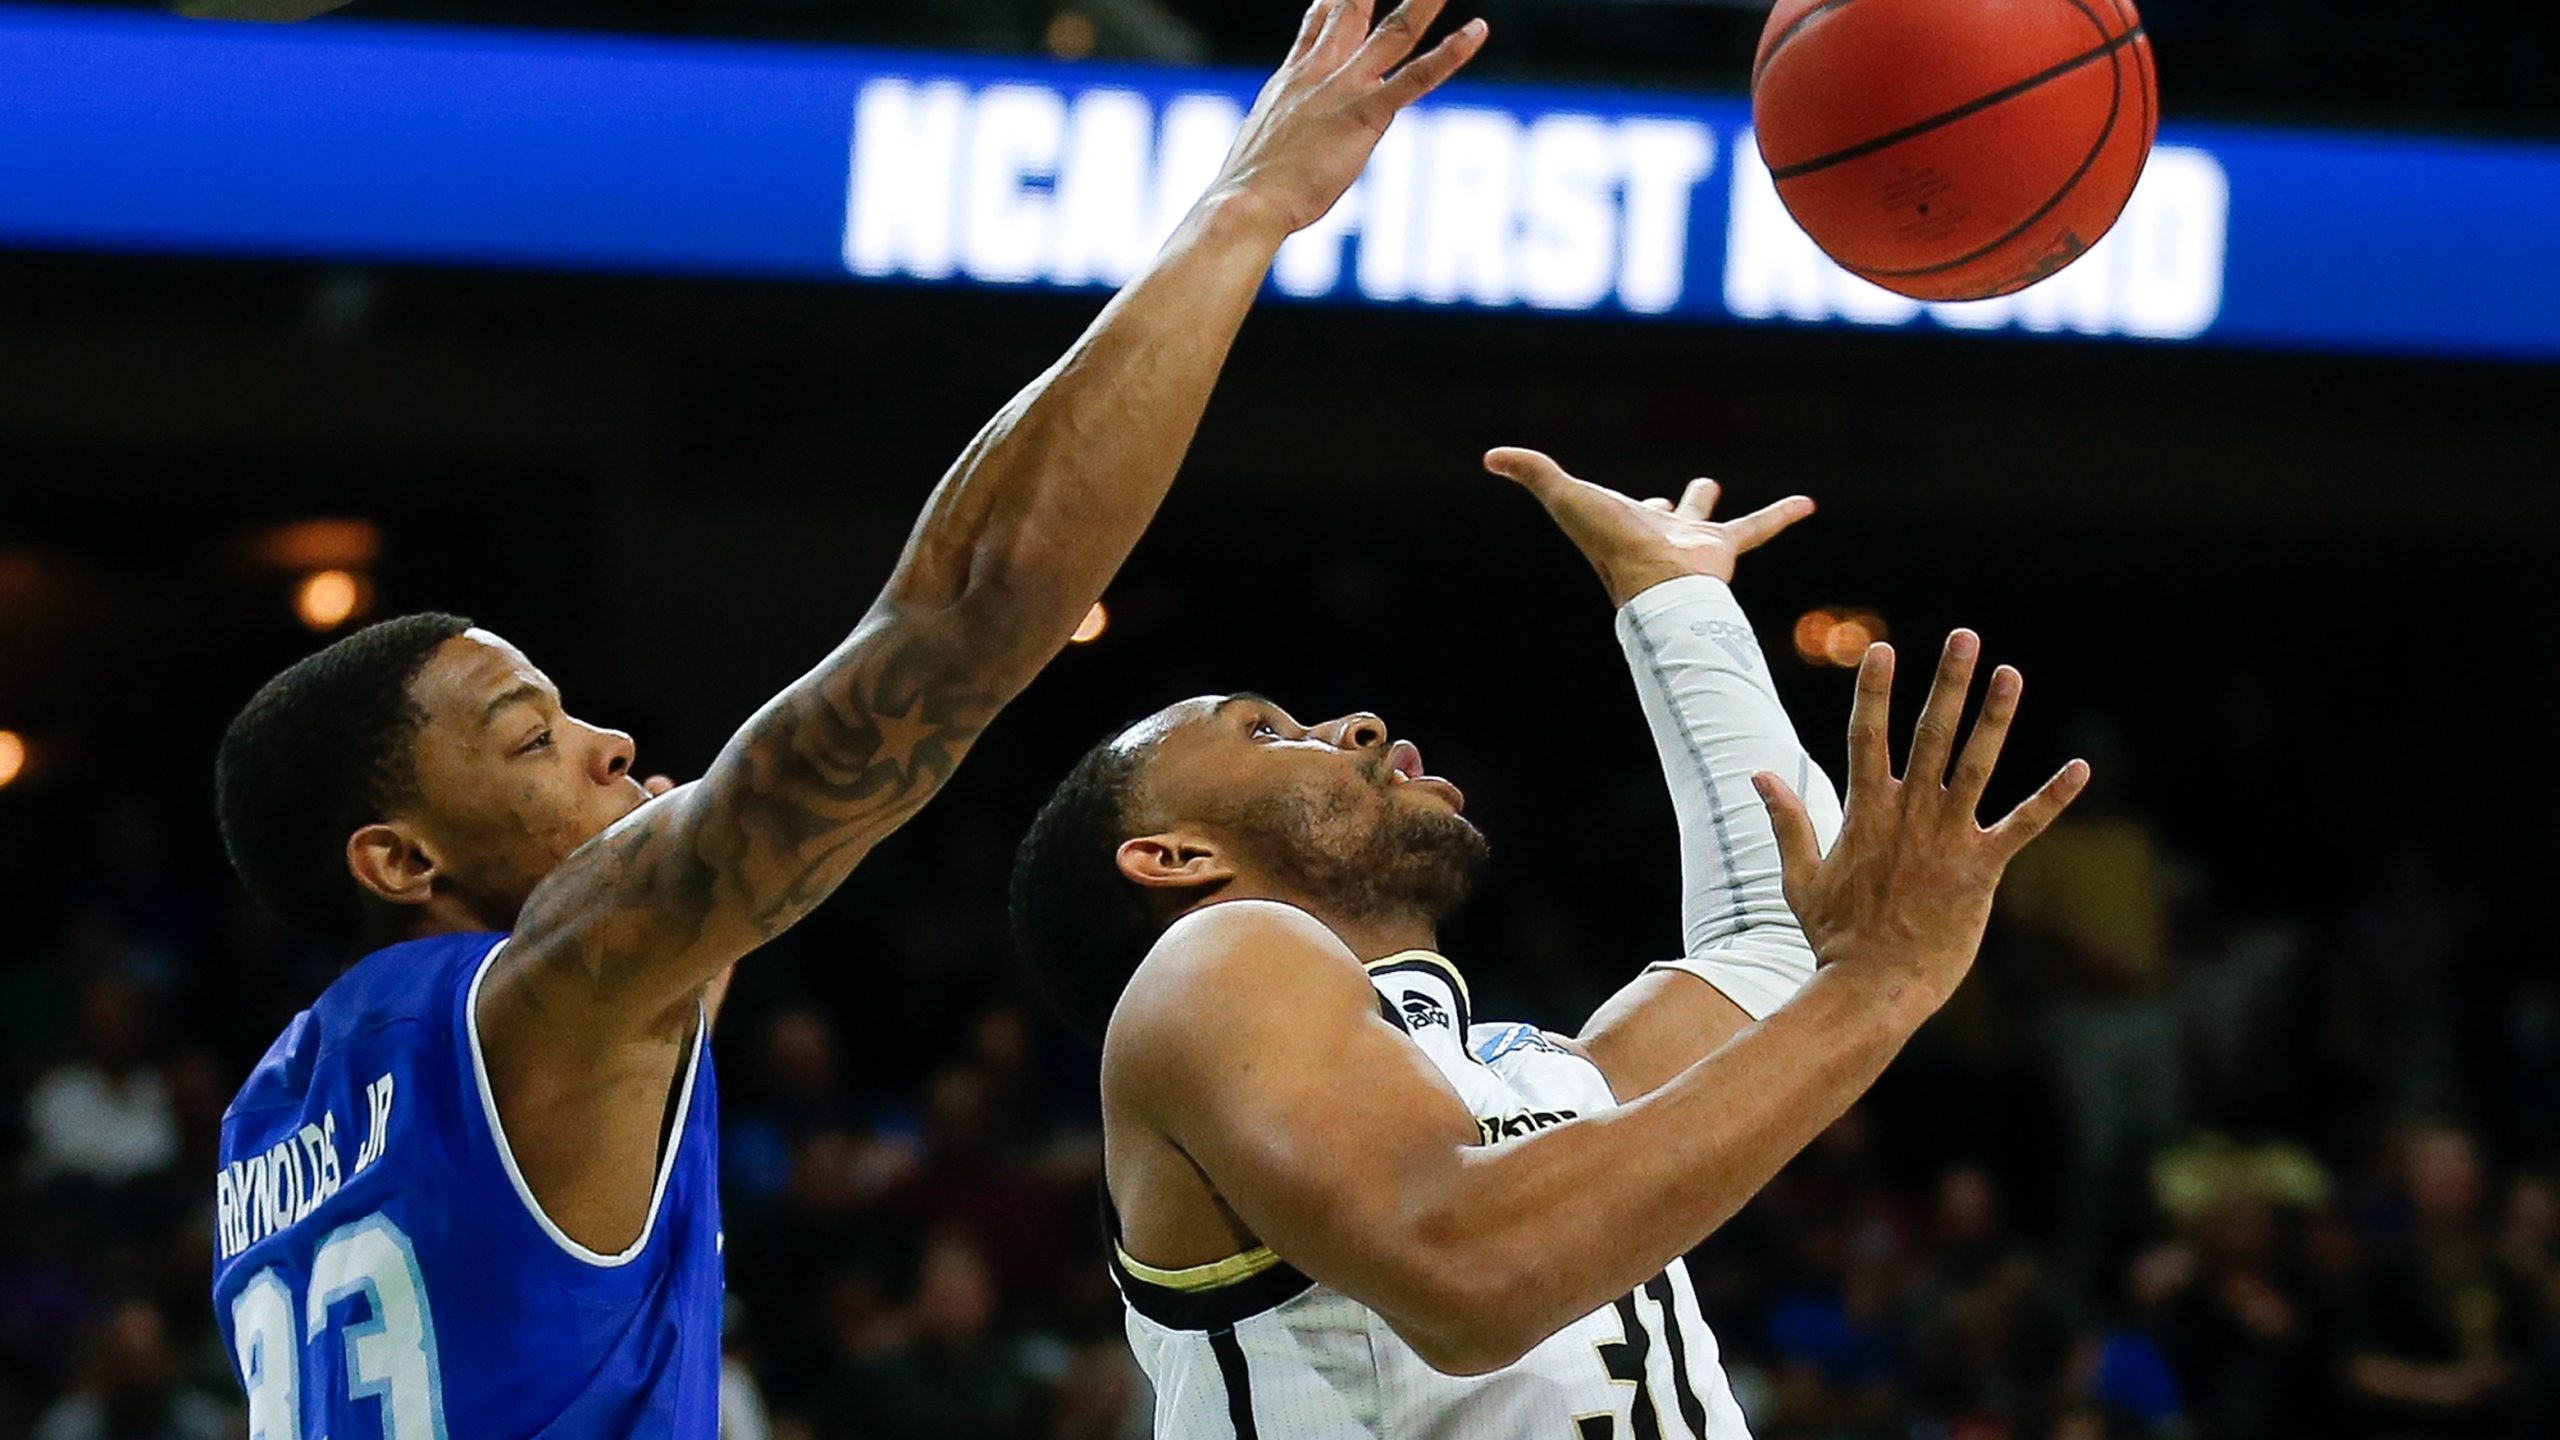 NCAA_Seton_Hall_Wofford_Basketball_24217-159532-159532.jpg86326034